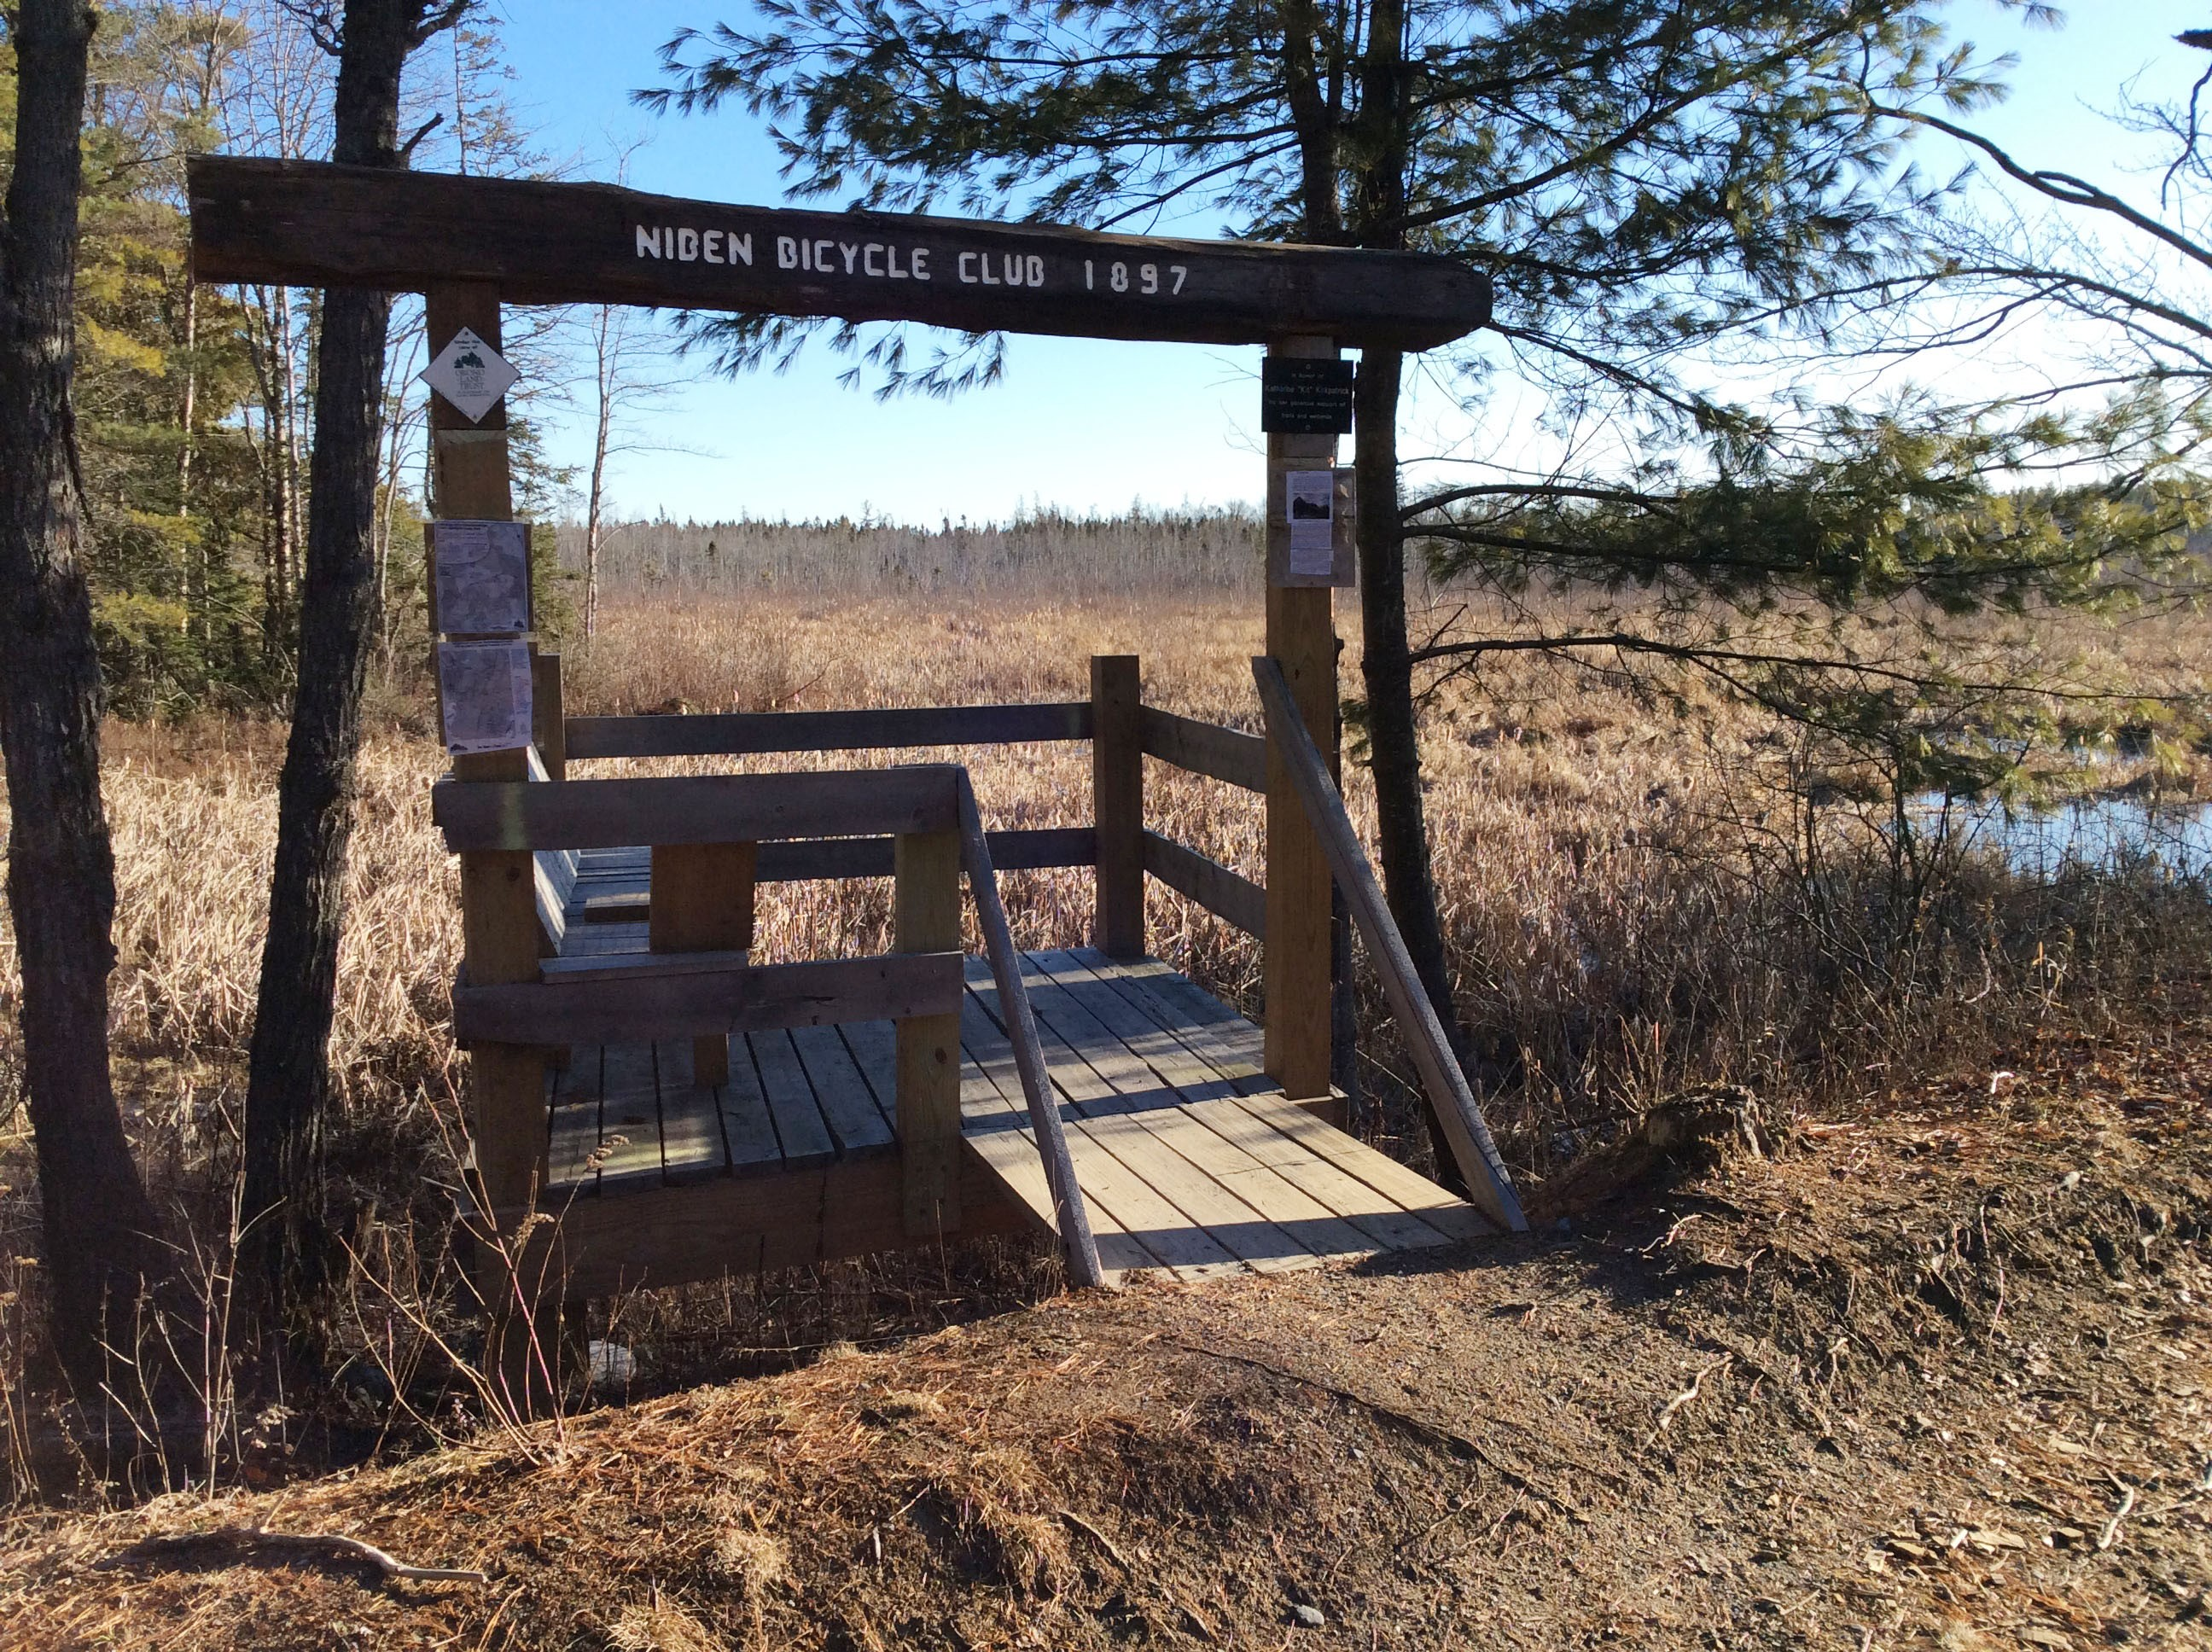 This viewing deck is located alongside the Veazie Railroad trail in Orono, off Forest Avenue. Built by Orono Land Trust volunteers, it provides respite and a view of the varied pond life.